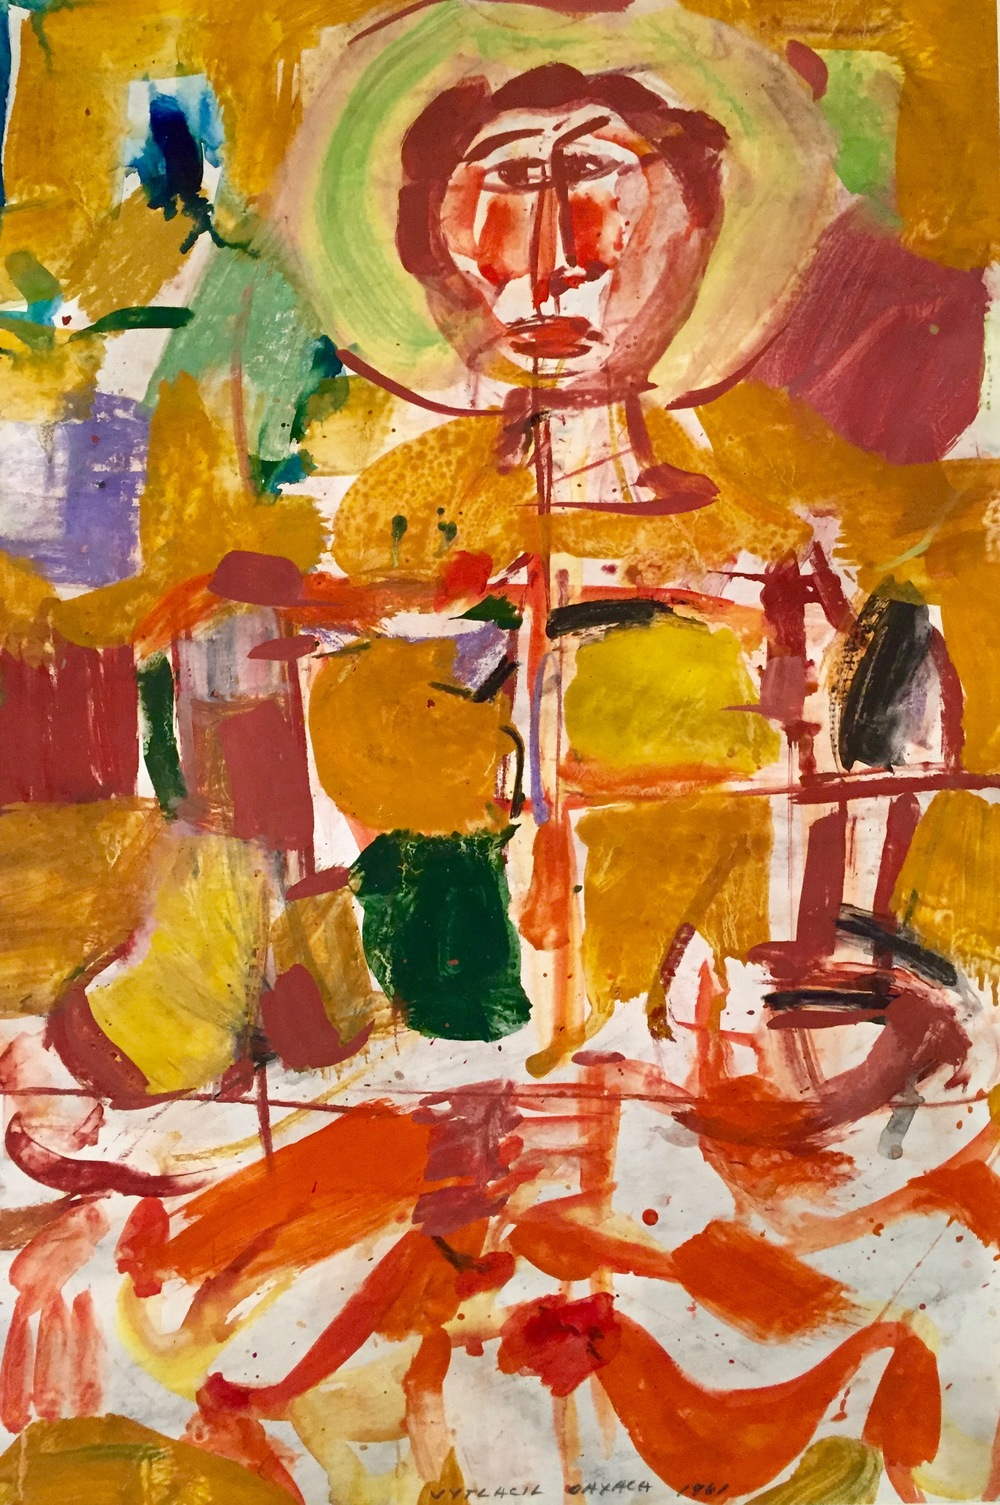 A mexican figure,1961    Medium: Paintings, Acrylic and tempera on paper   Size: 34 x 23 in. (86.4 x 58.4 cm.)  Markings: Signed and dated in the lower center